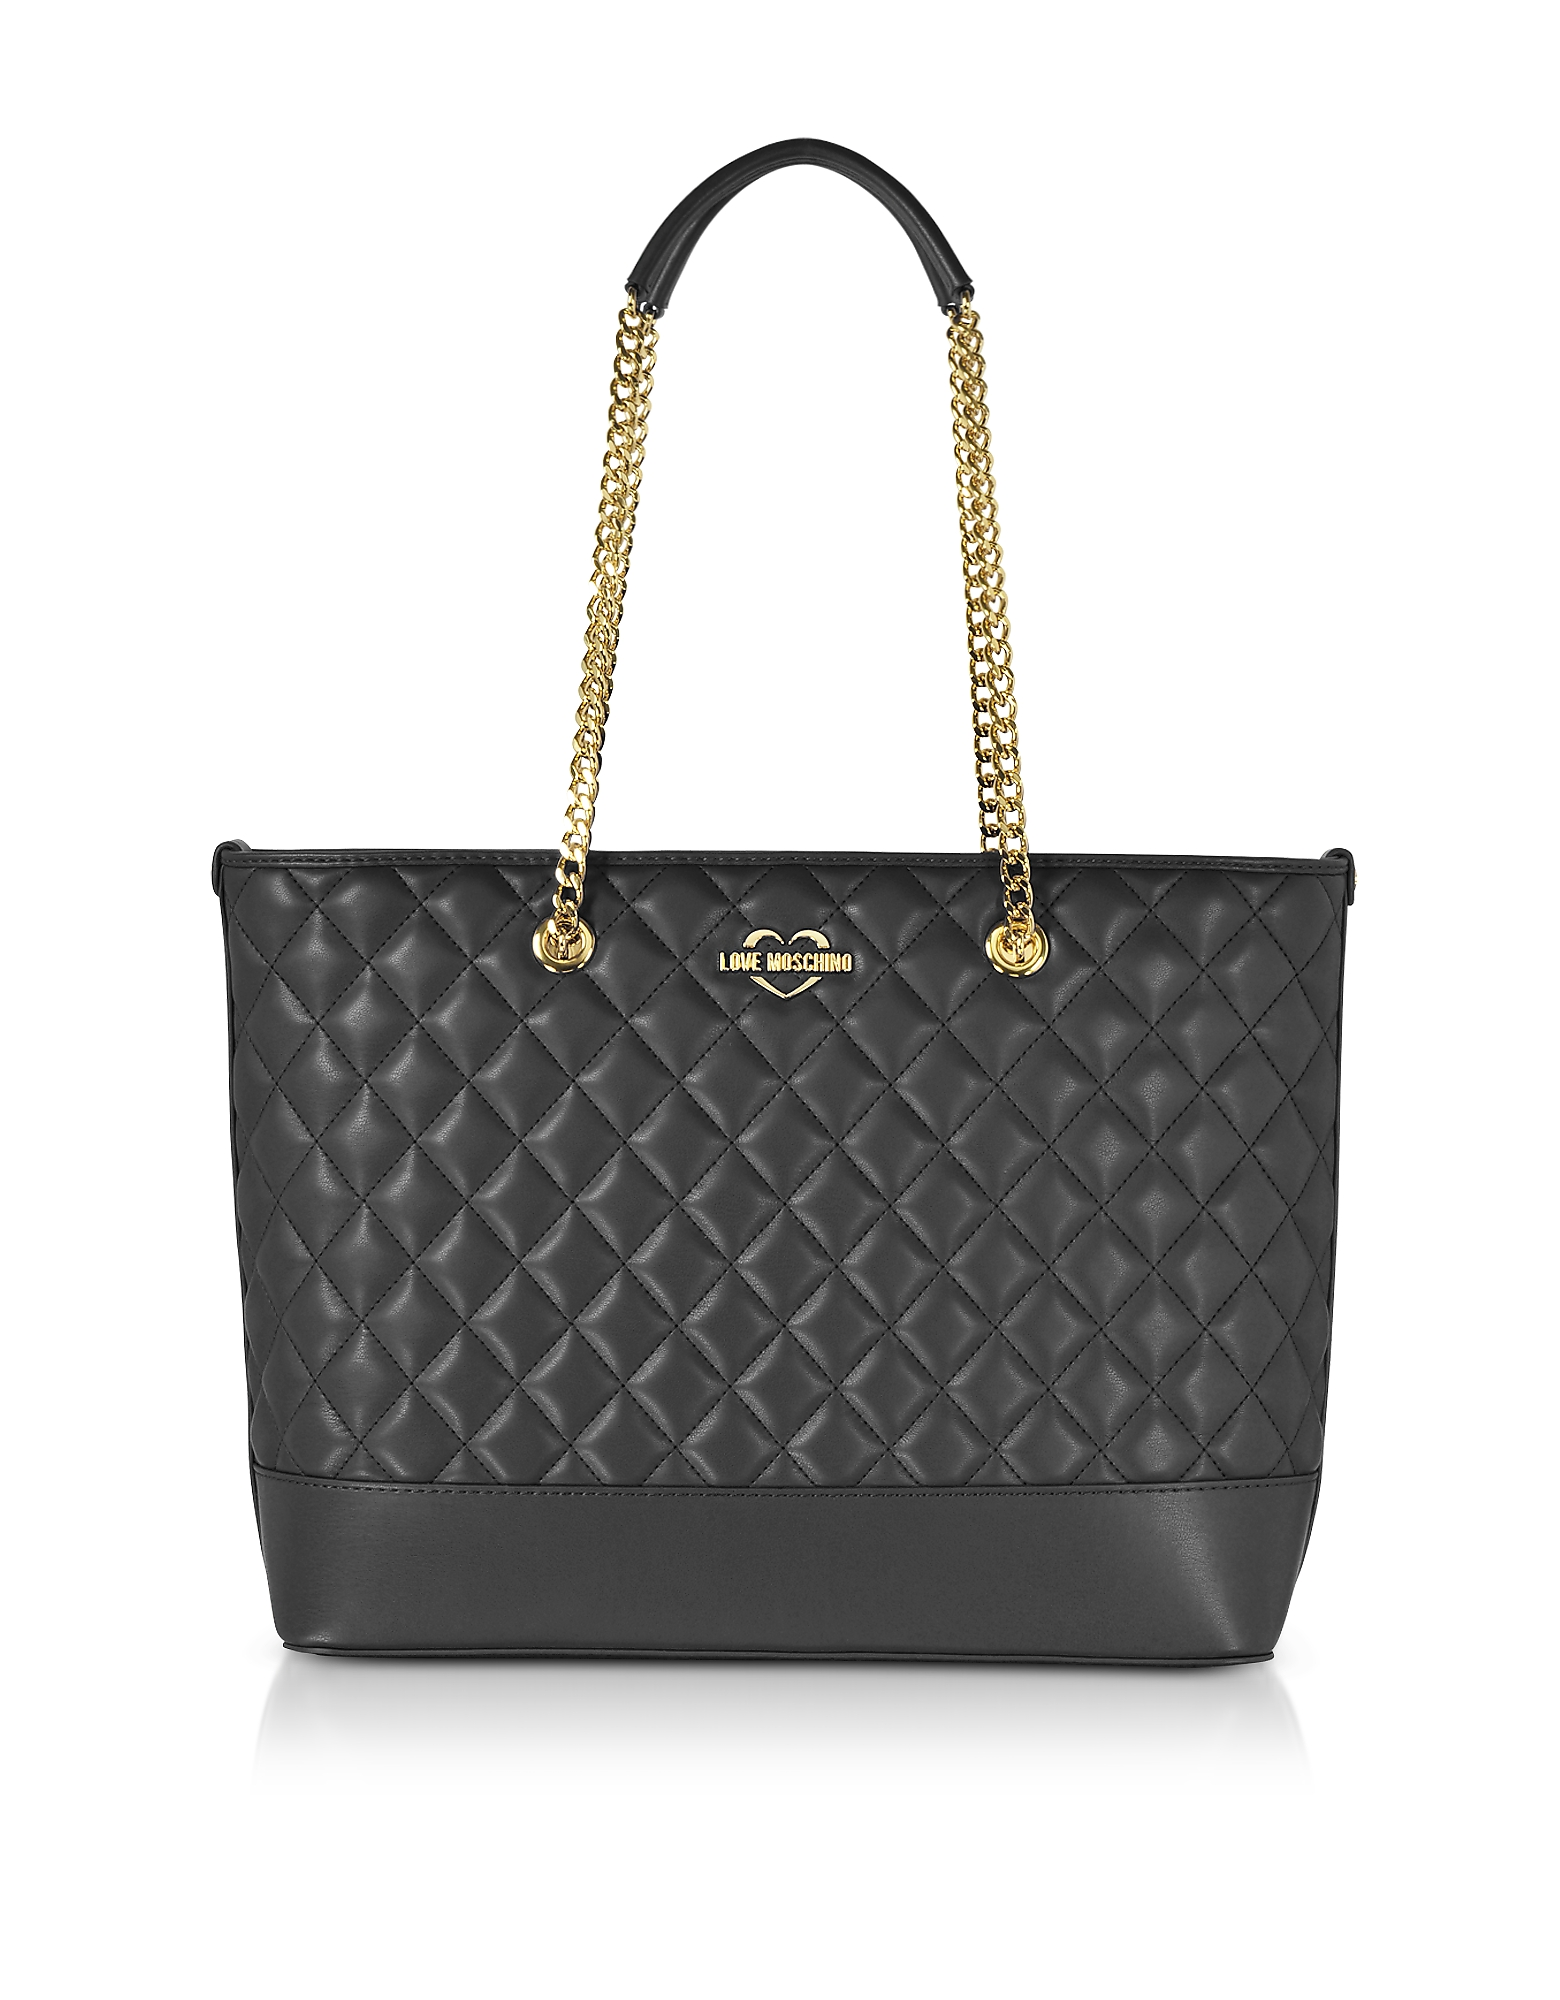 Love Moschino Handbags, Black Superquilted Eco-Leather Tote Bag